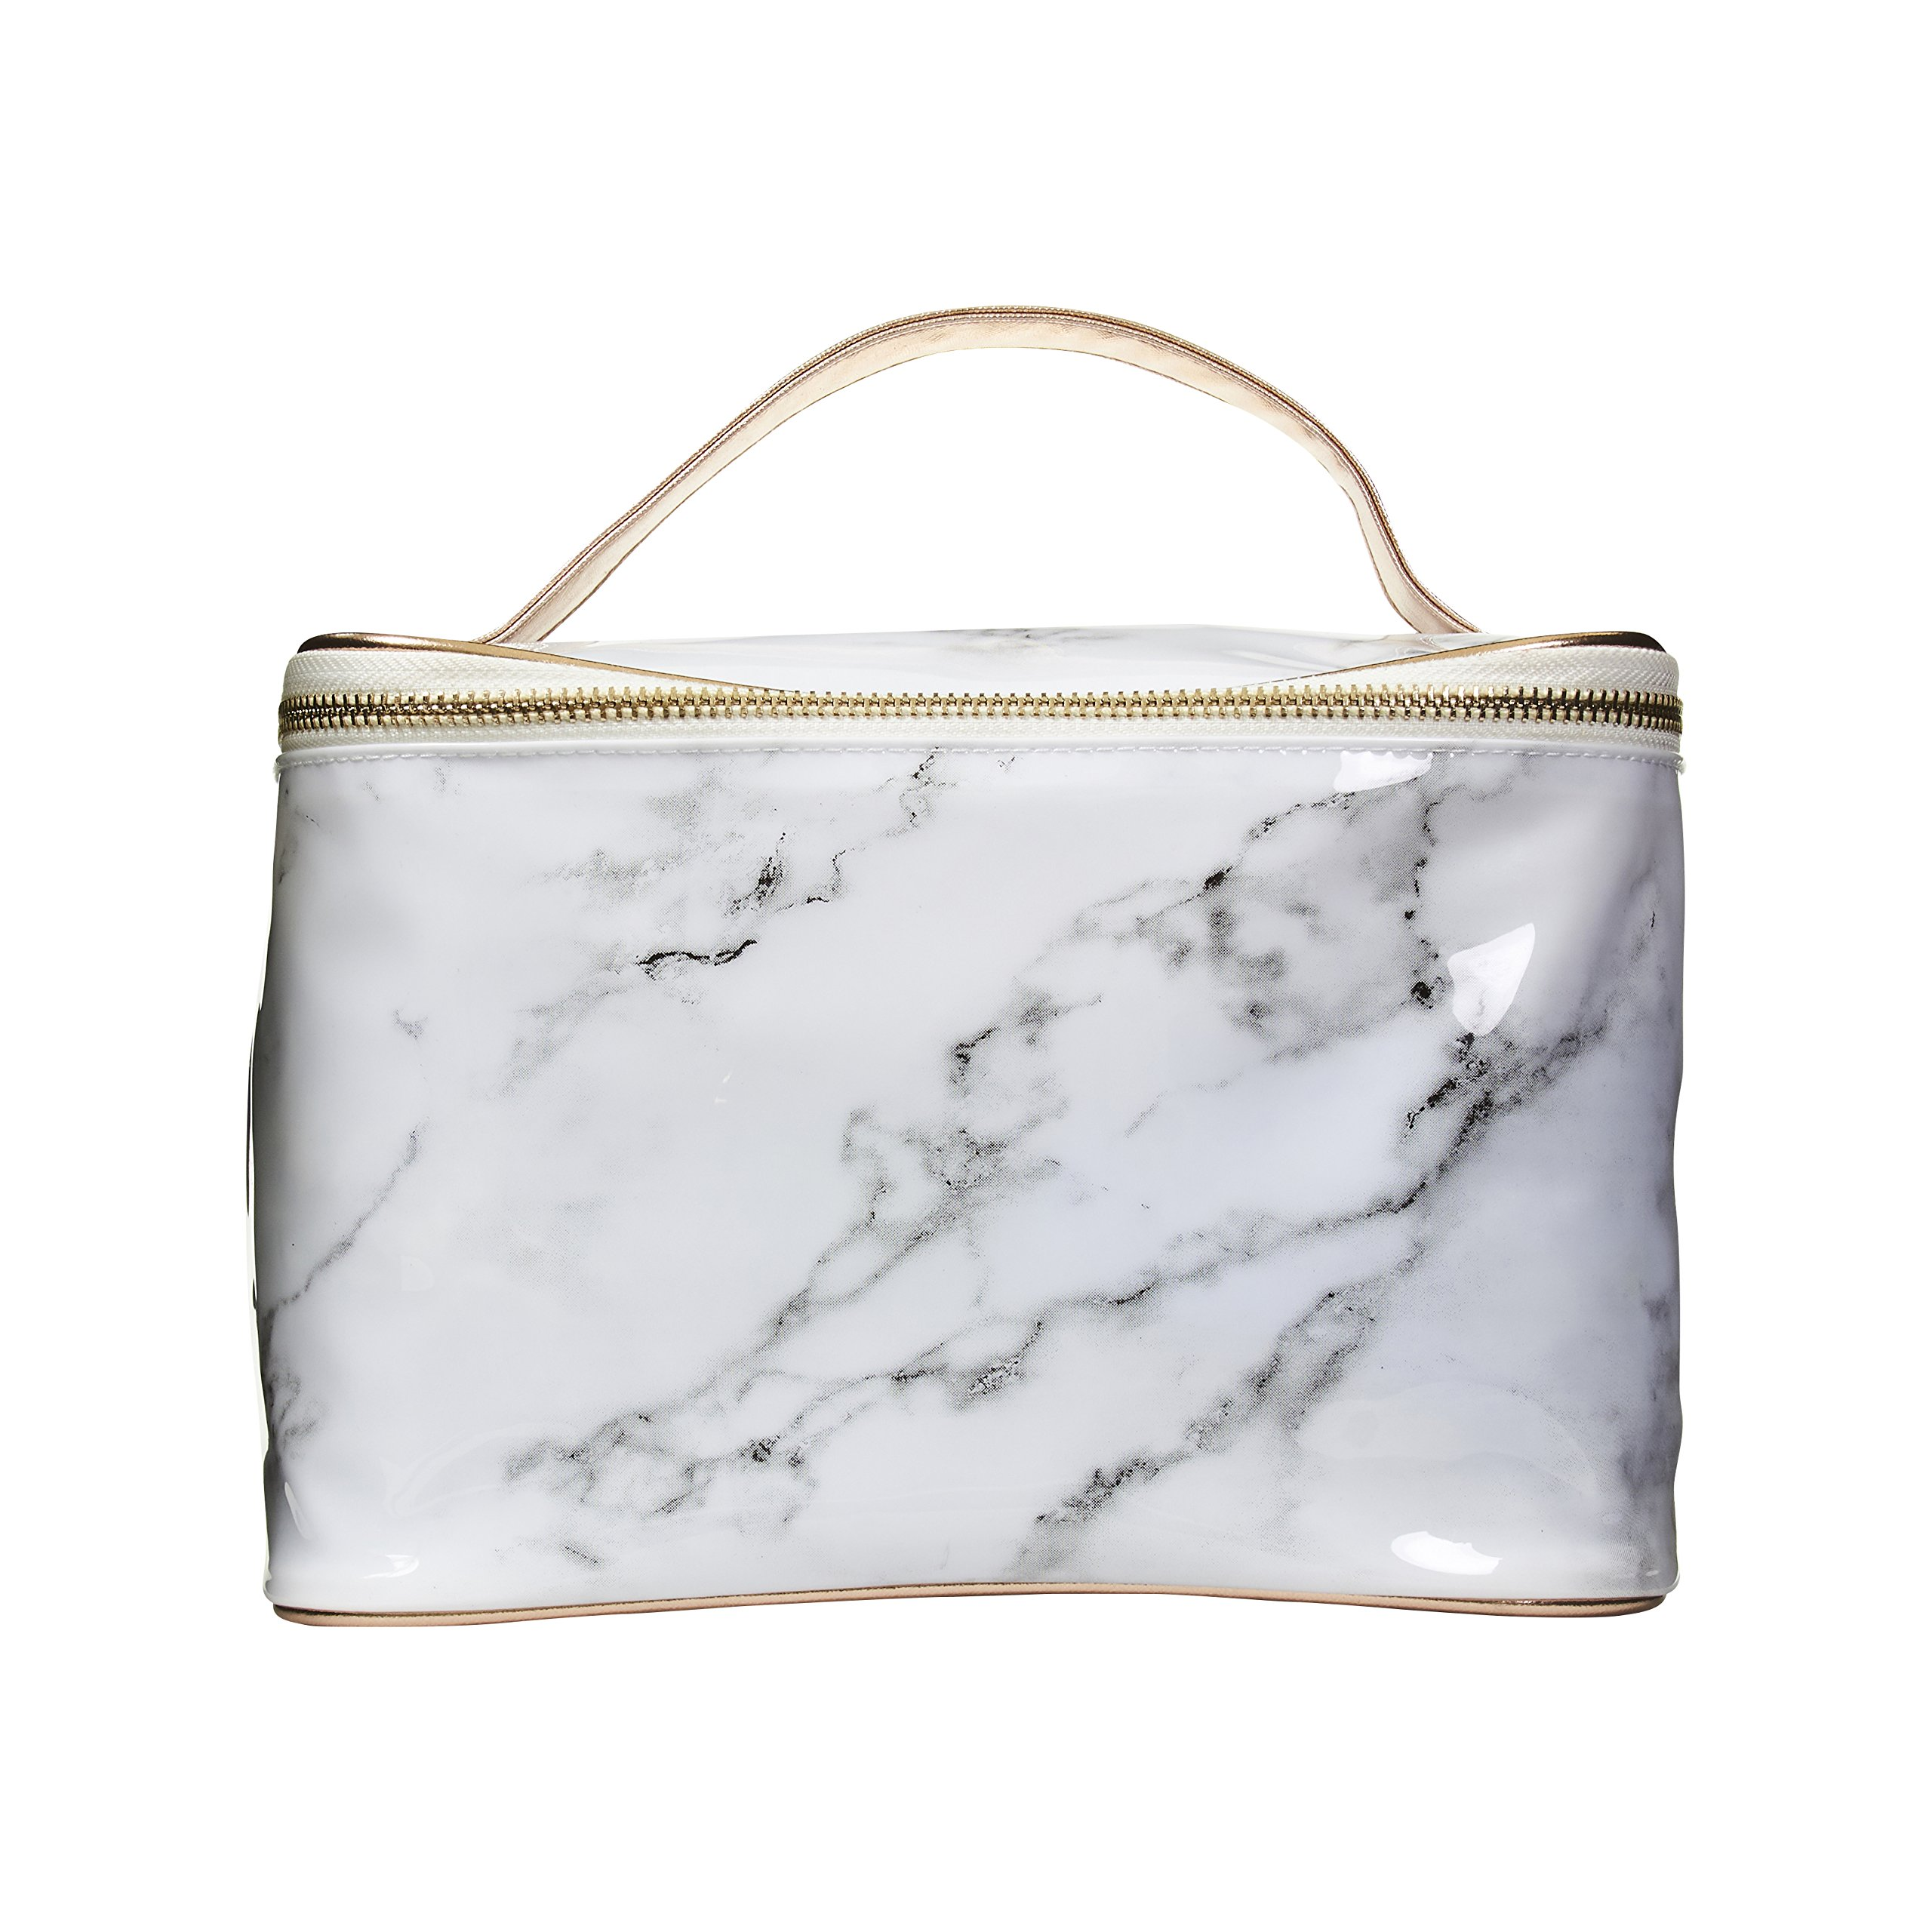 Cosmopolitan Travel Makeup Bag Cosmetic Case Organizer Bag for Women (Marble)